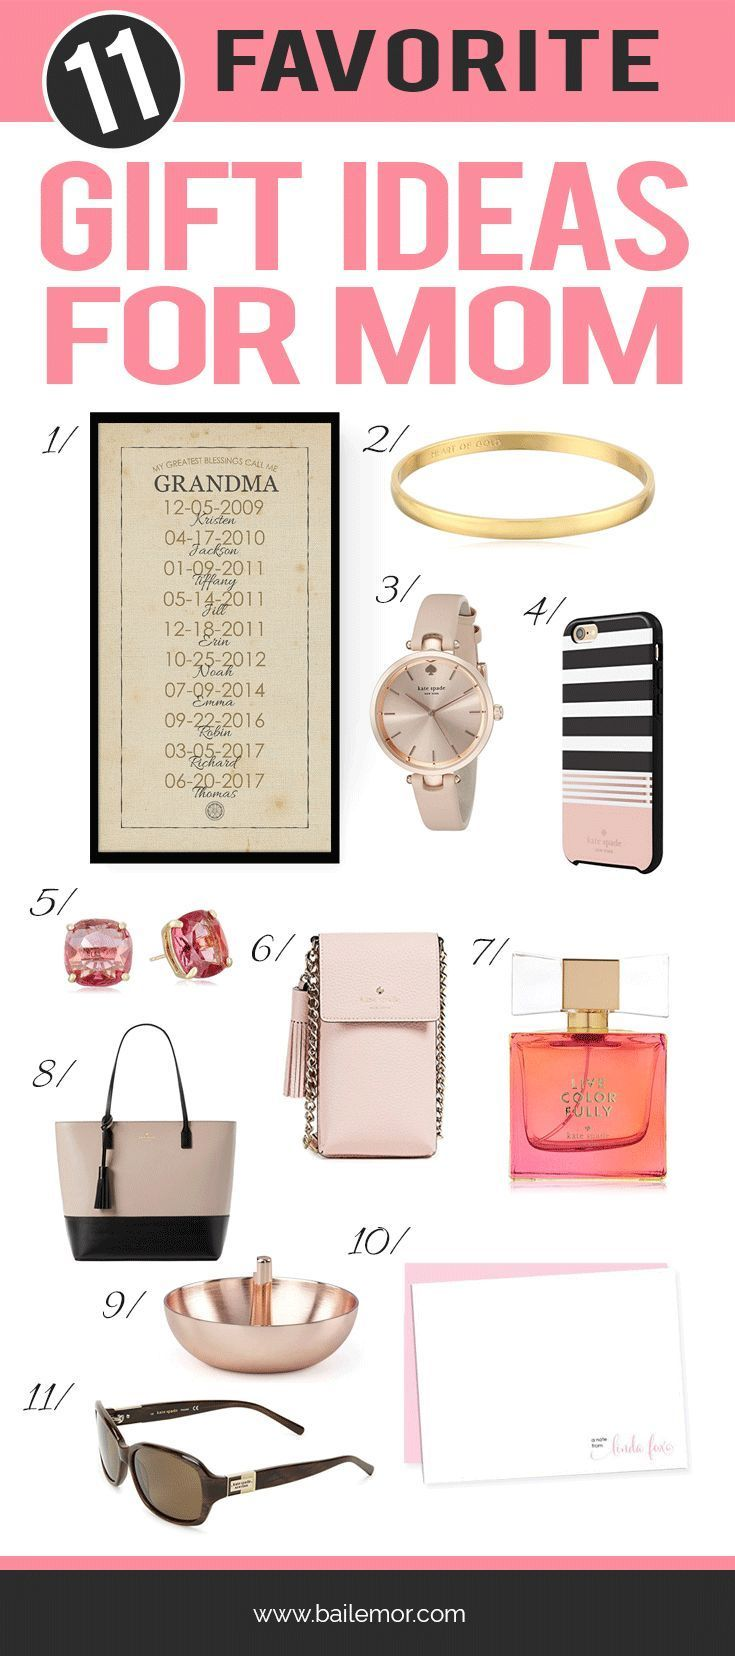 birthday gift ideas for mom from daughter to make